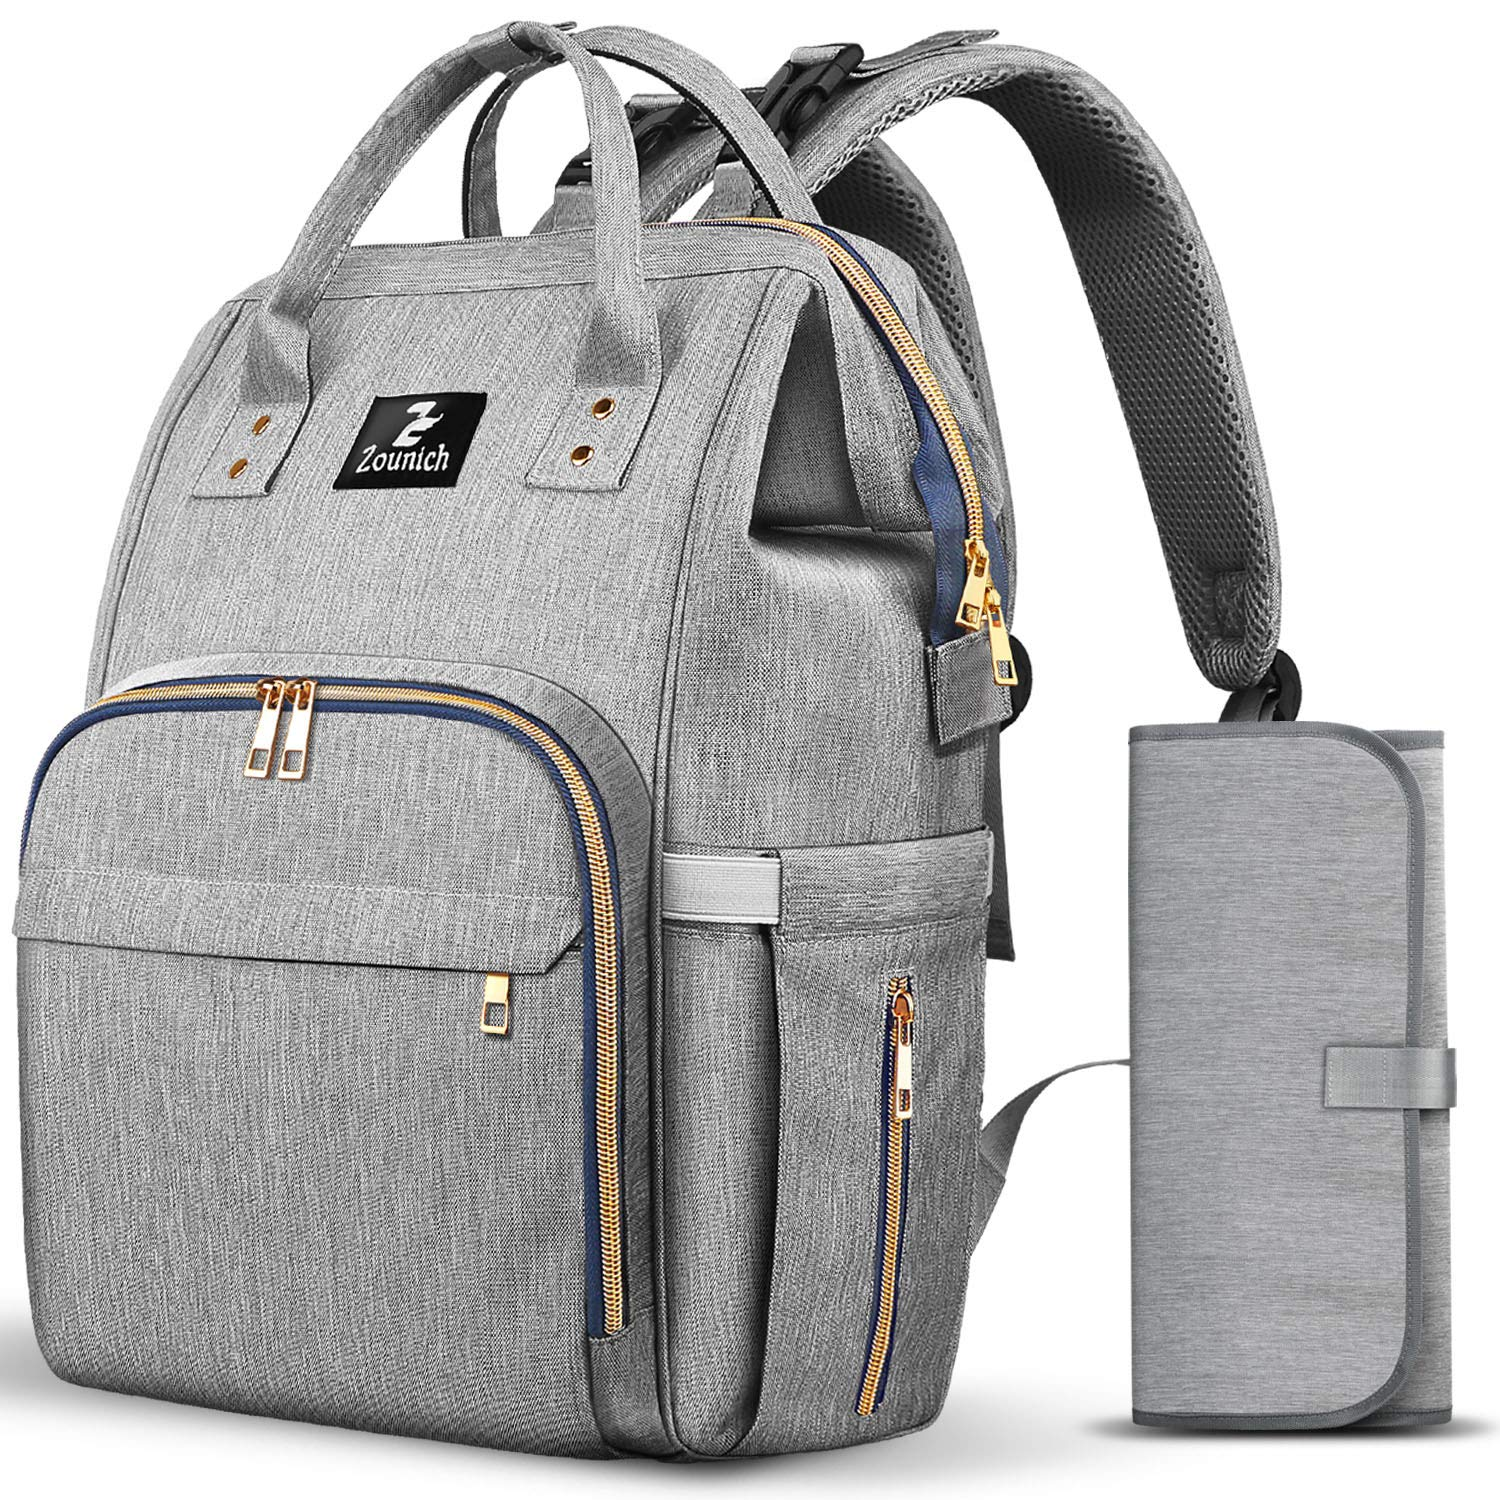 Diaper Bag Backpack,Waterproof Maternity Baby Nappy Changing Bags Back Pack Gray